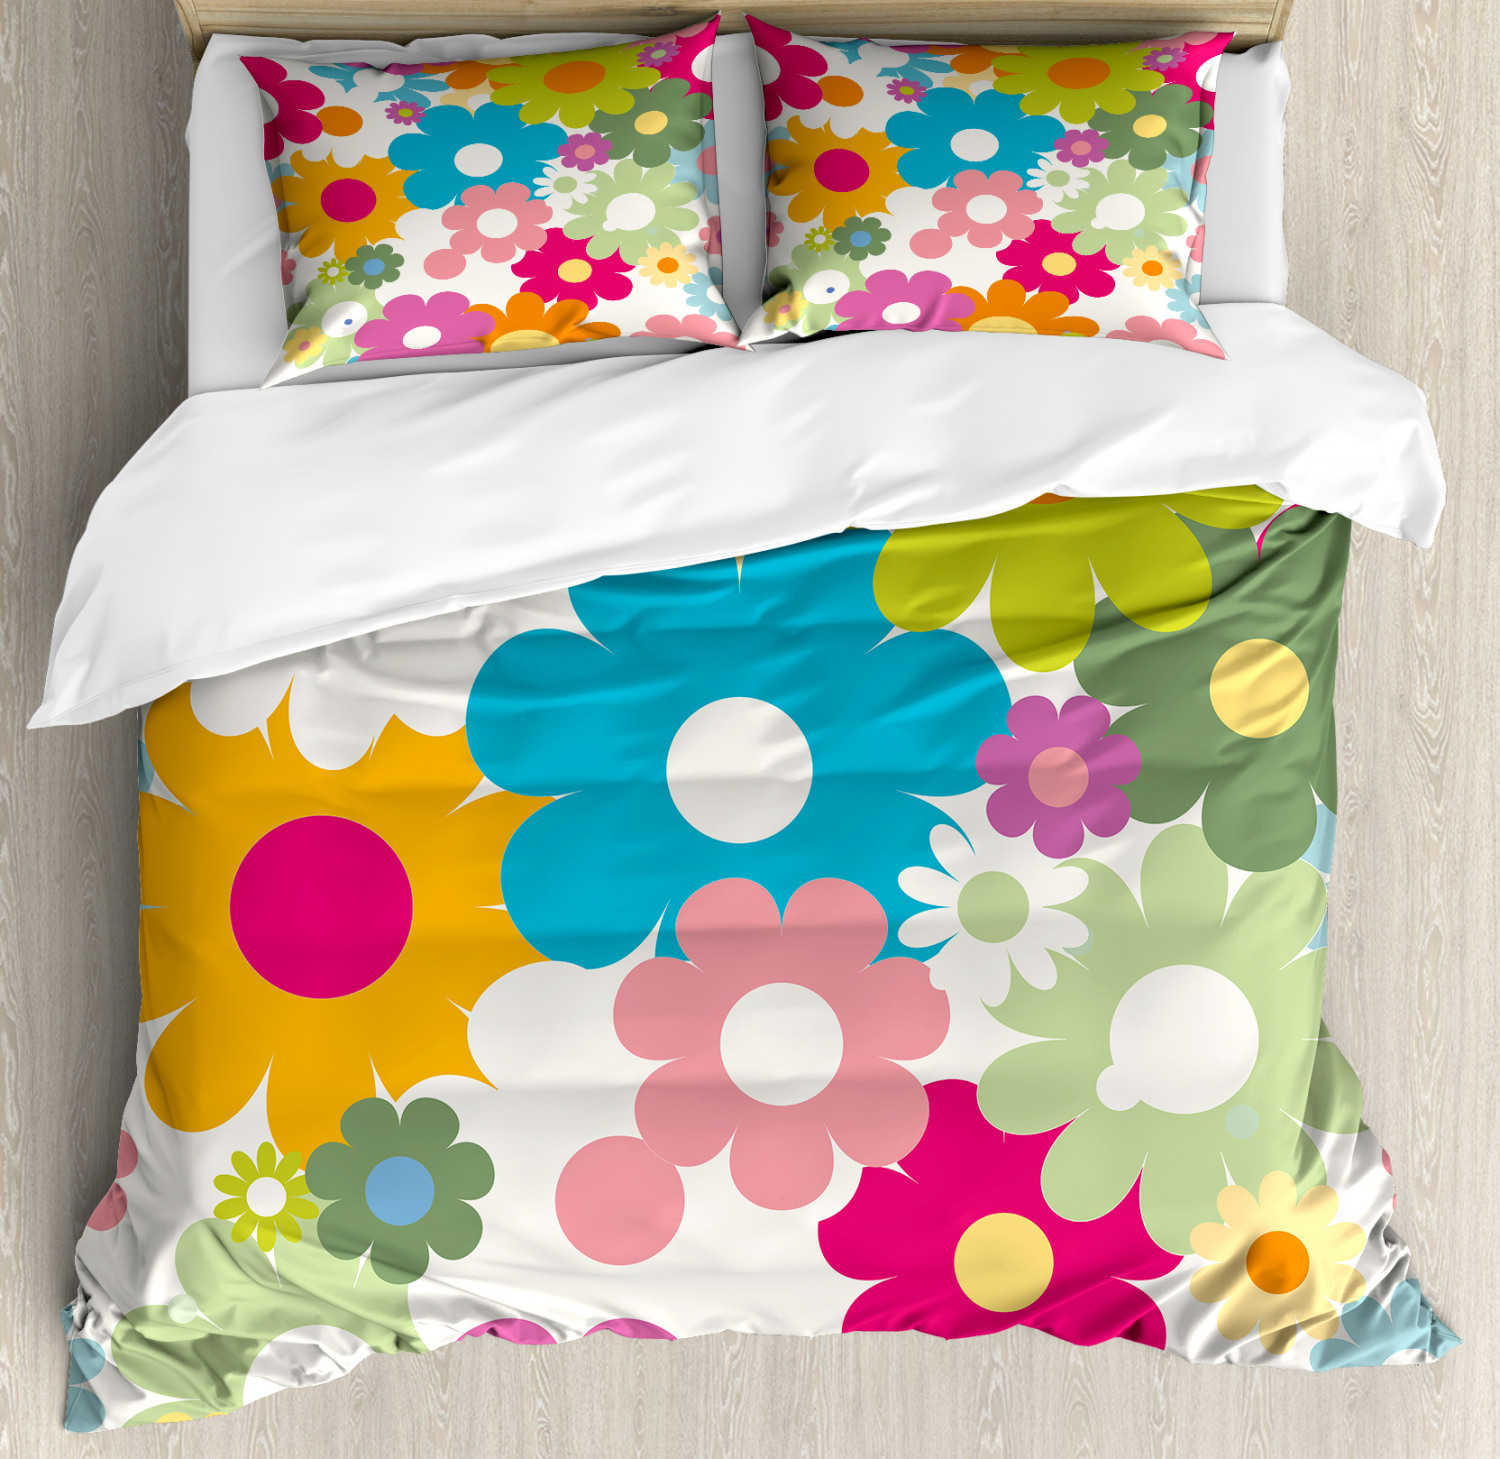 Floral Duvet Cover Set with Pillow Shams Sixties Inspiration Print